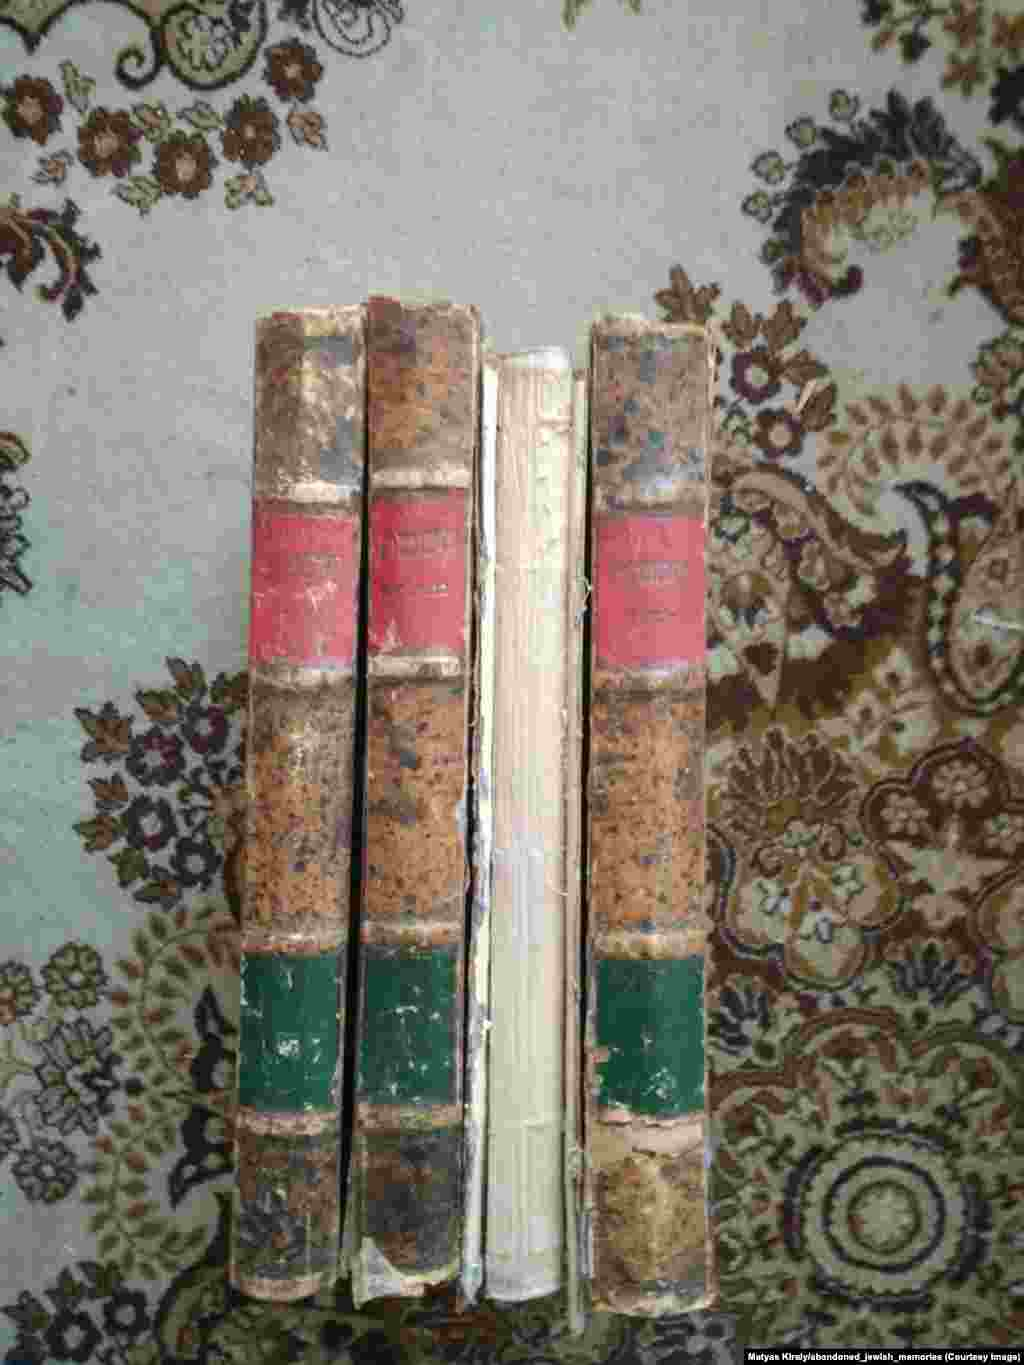 Talmud books that Kiraly found for sale in Moscow. The battered texts were published in 1895.